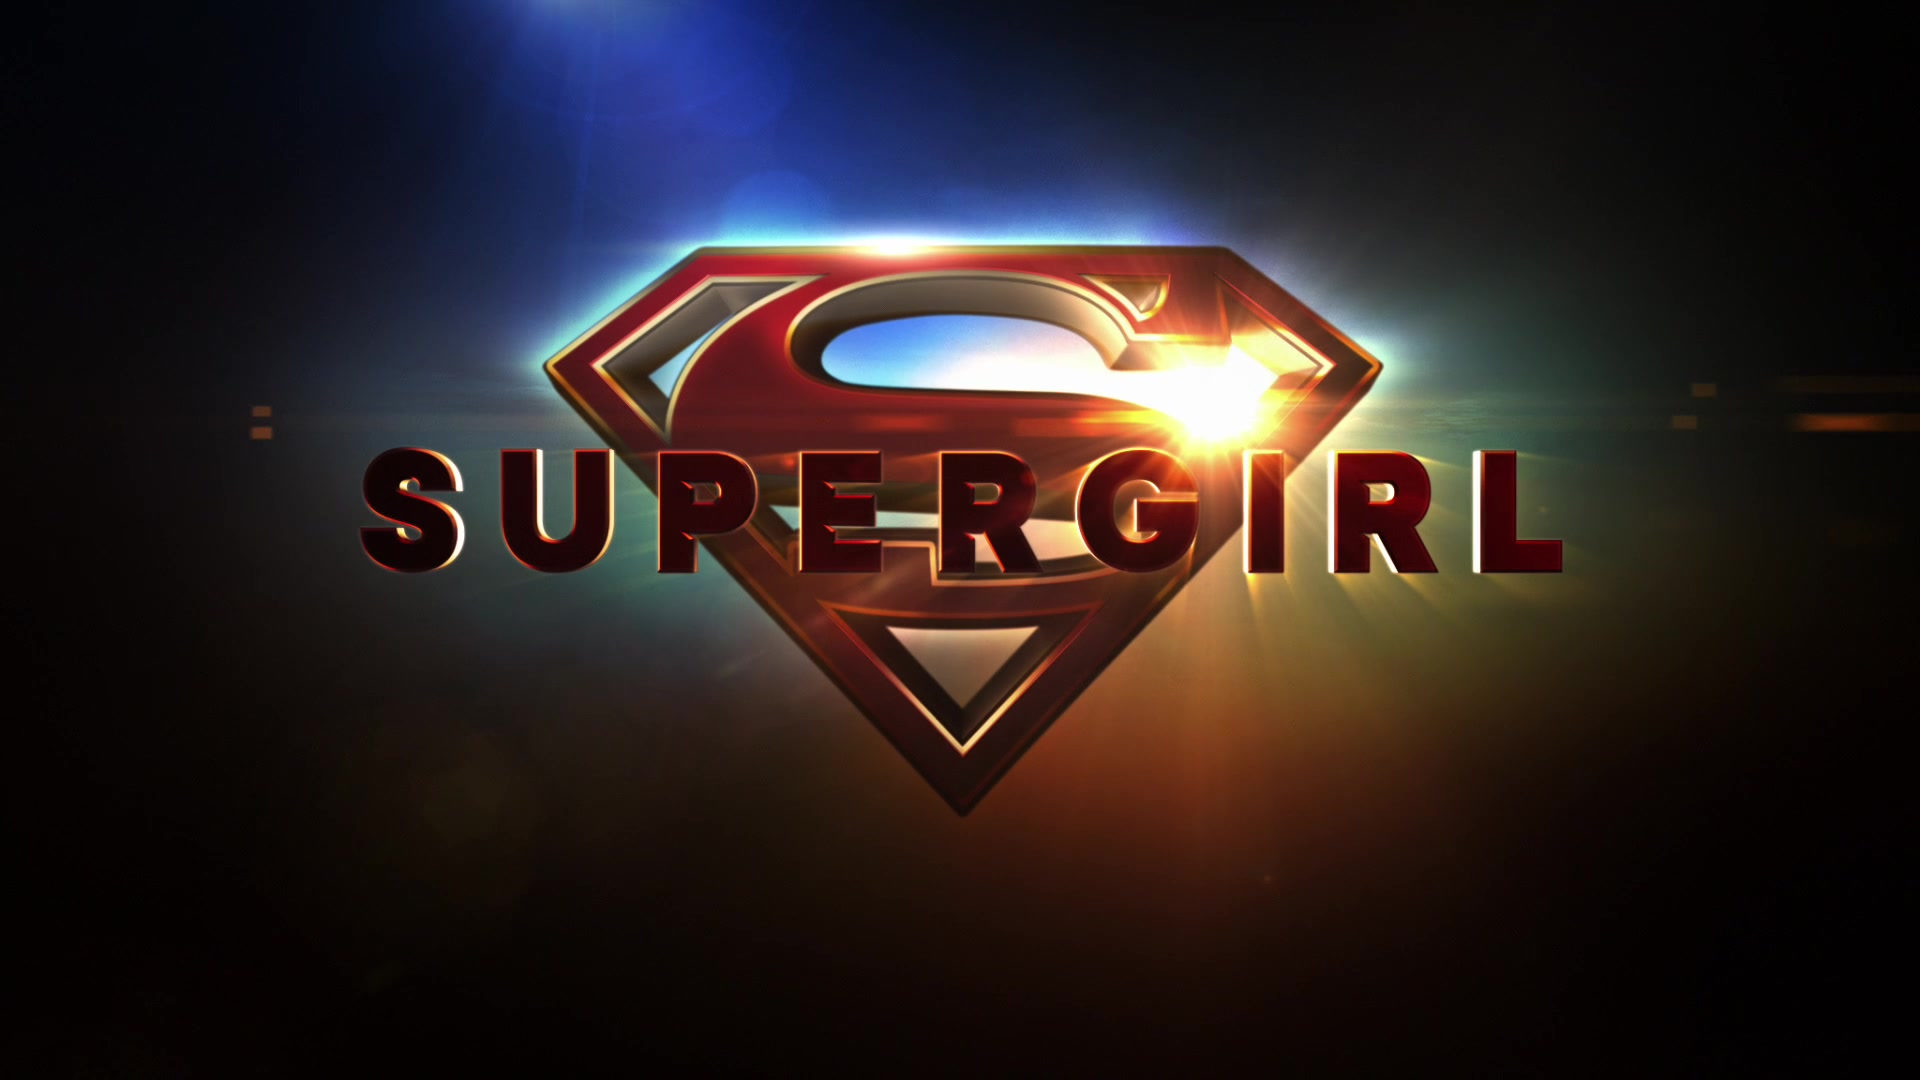 Supergirl (TV Series) Episode: In Plain Sight